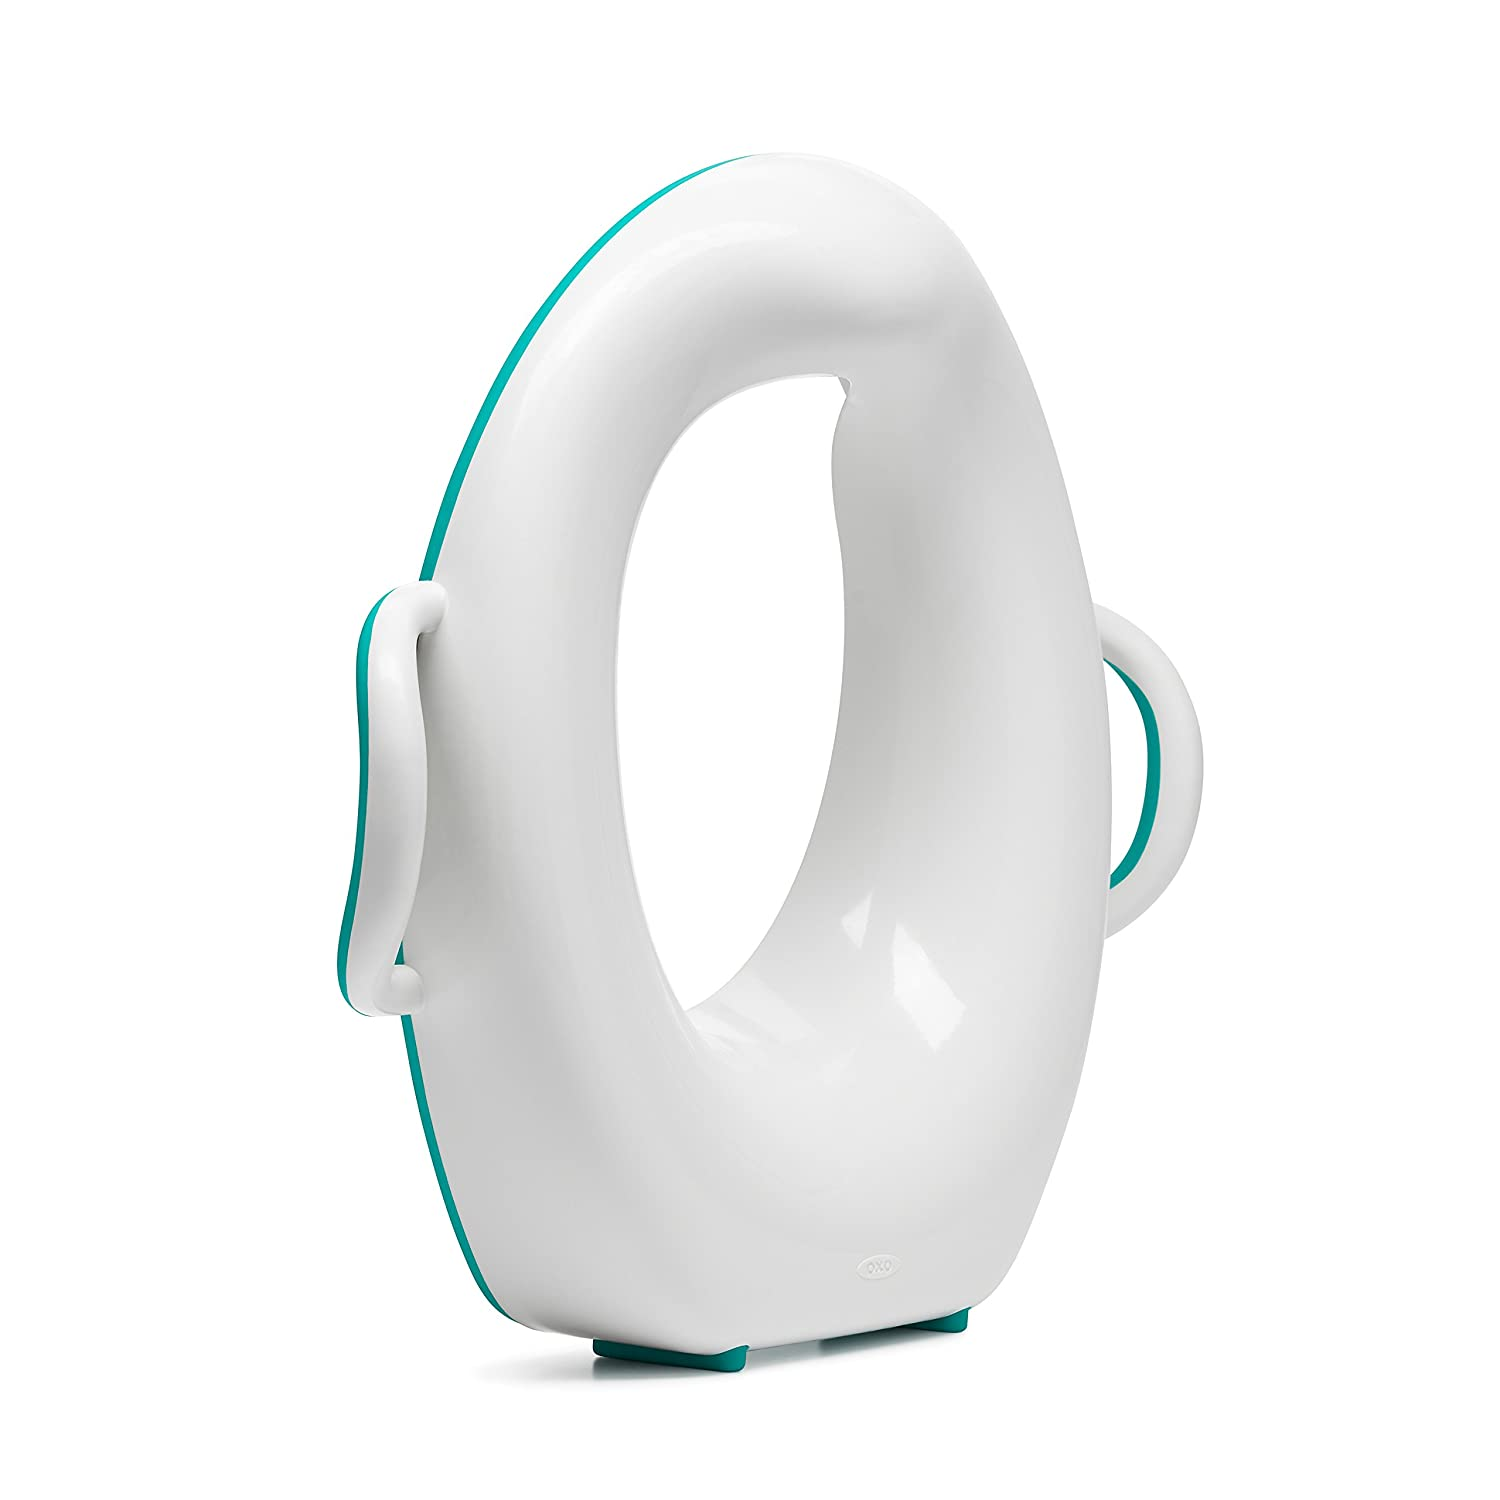 Oxo Tot sitzen Right Potty Seat, Teal